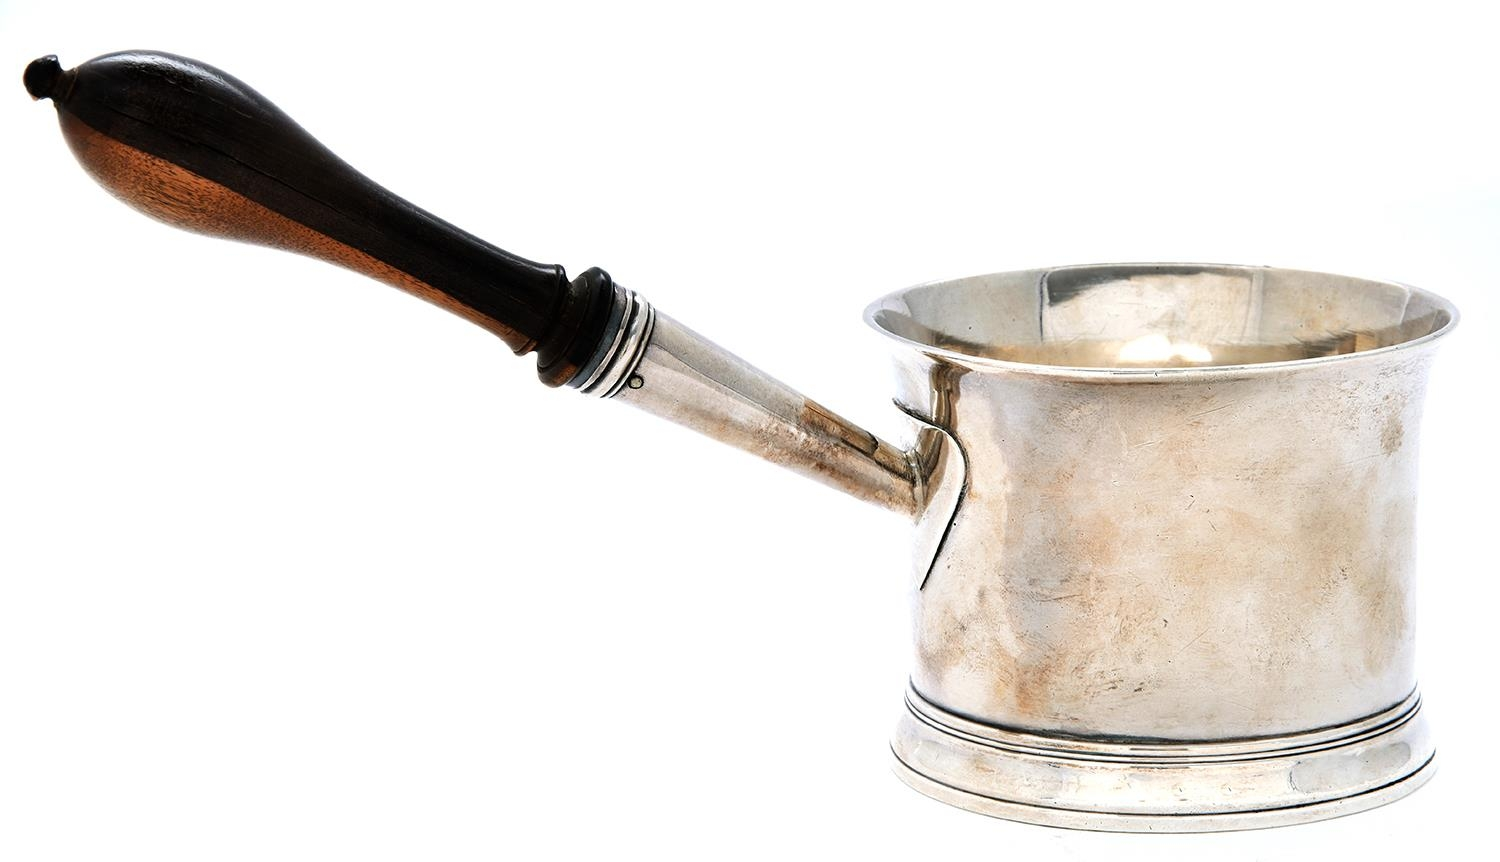 A George III silver saucepan, with flared rim and lignum vitae handle, bowl 6.7cm h, by Walter